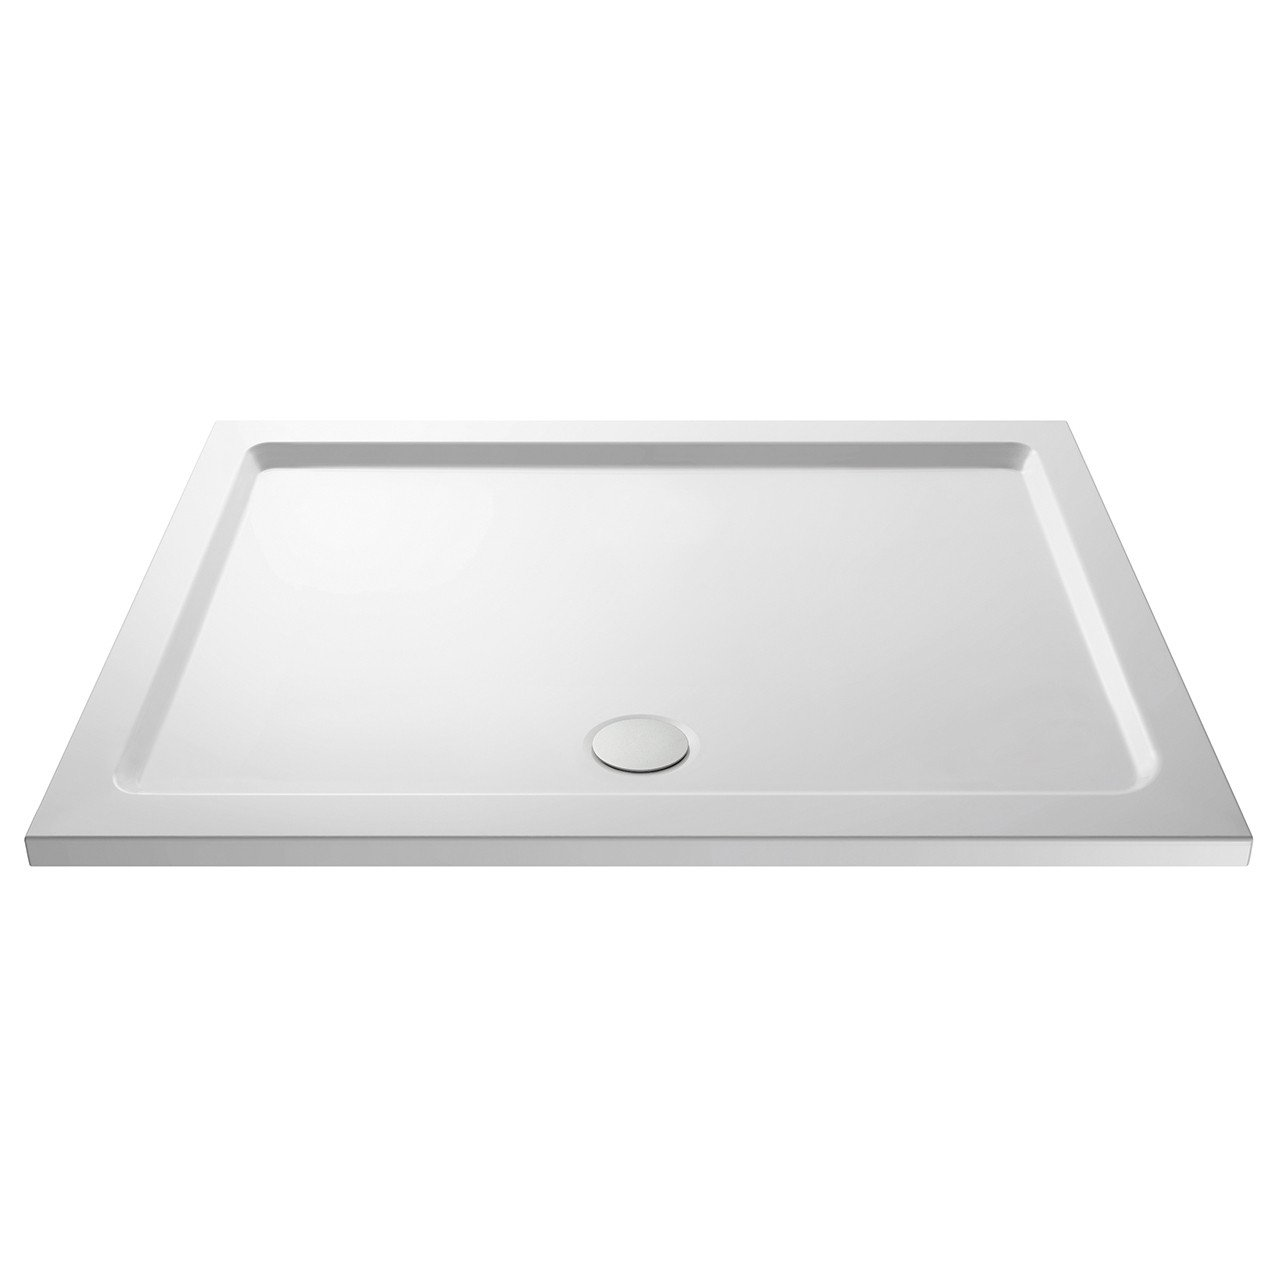 Premiere Pearlstone 1400mm x 800mm x 40mm Rectangular Shower Tray with Centre Waste - NTP033